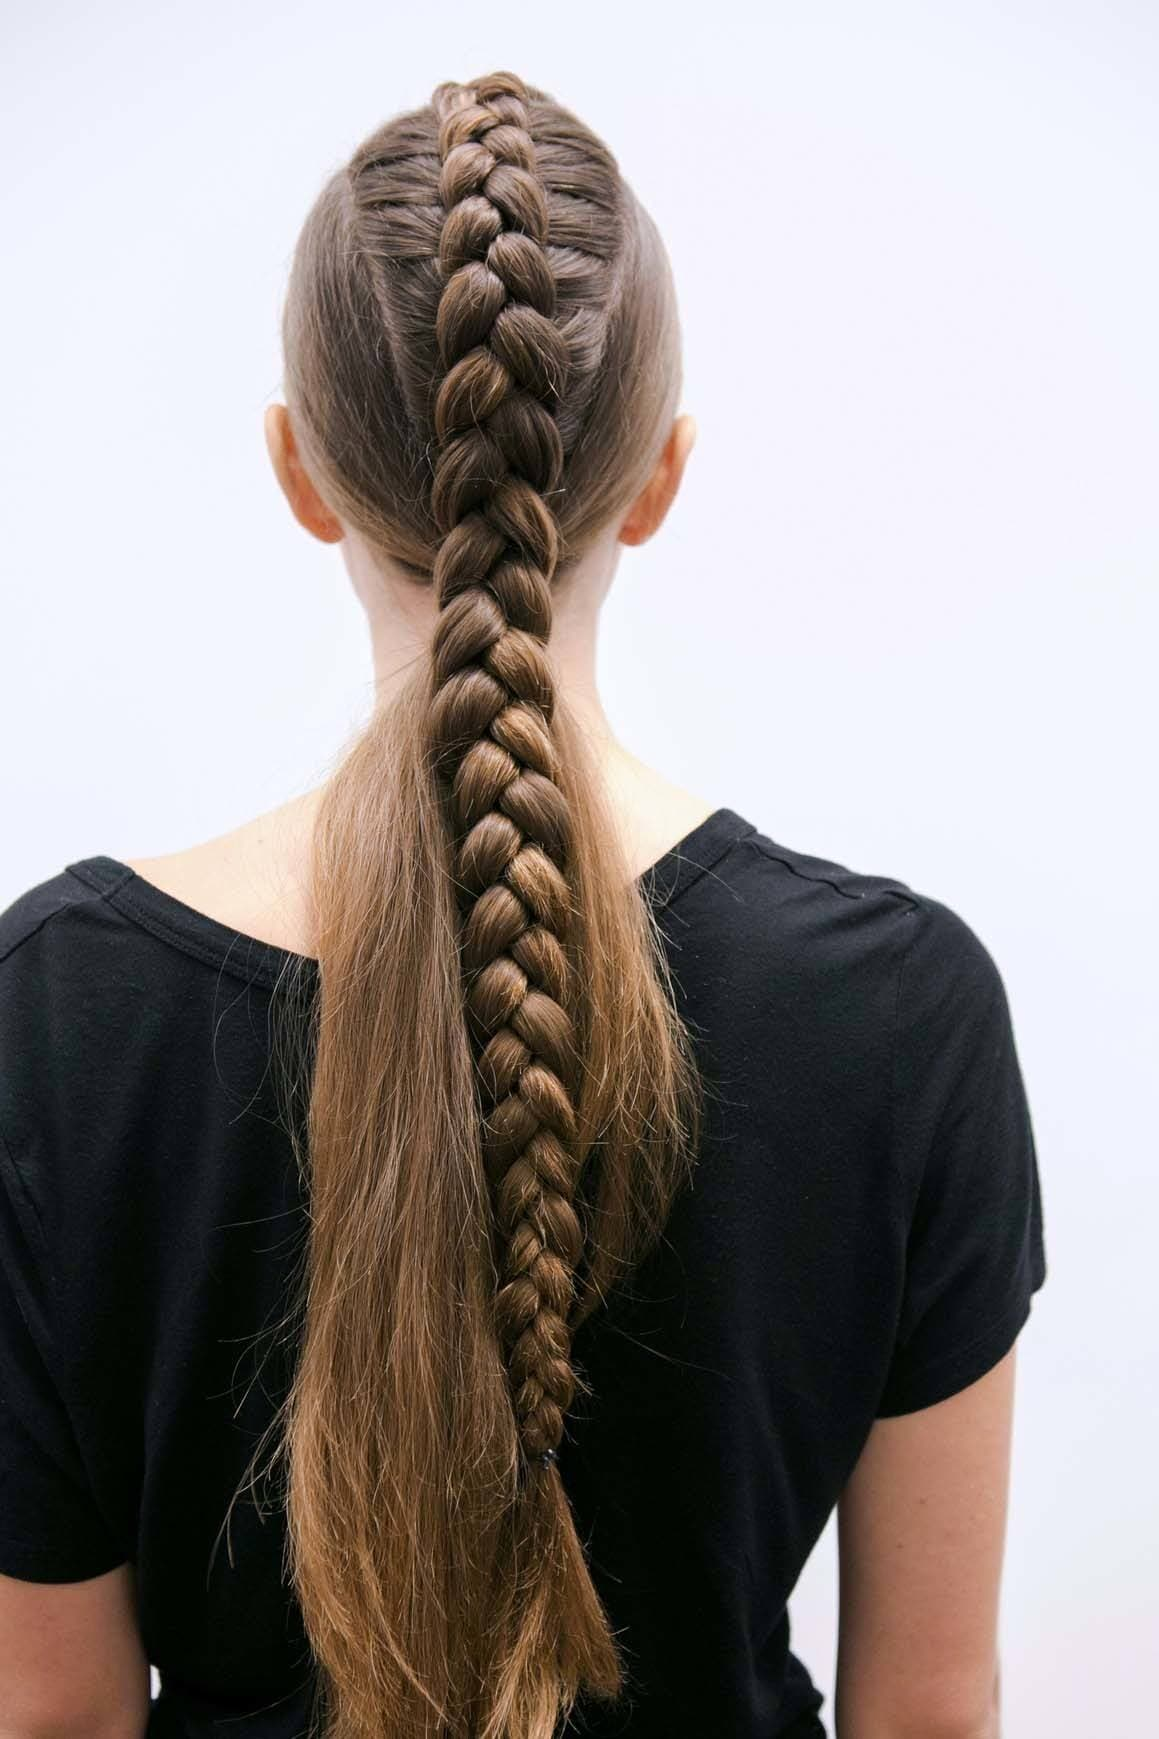 Woman with long brunette hair in a braid